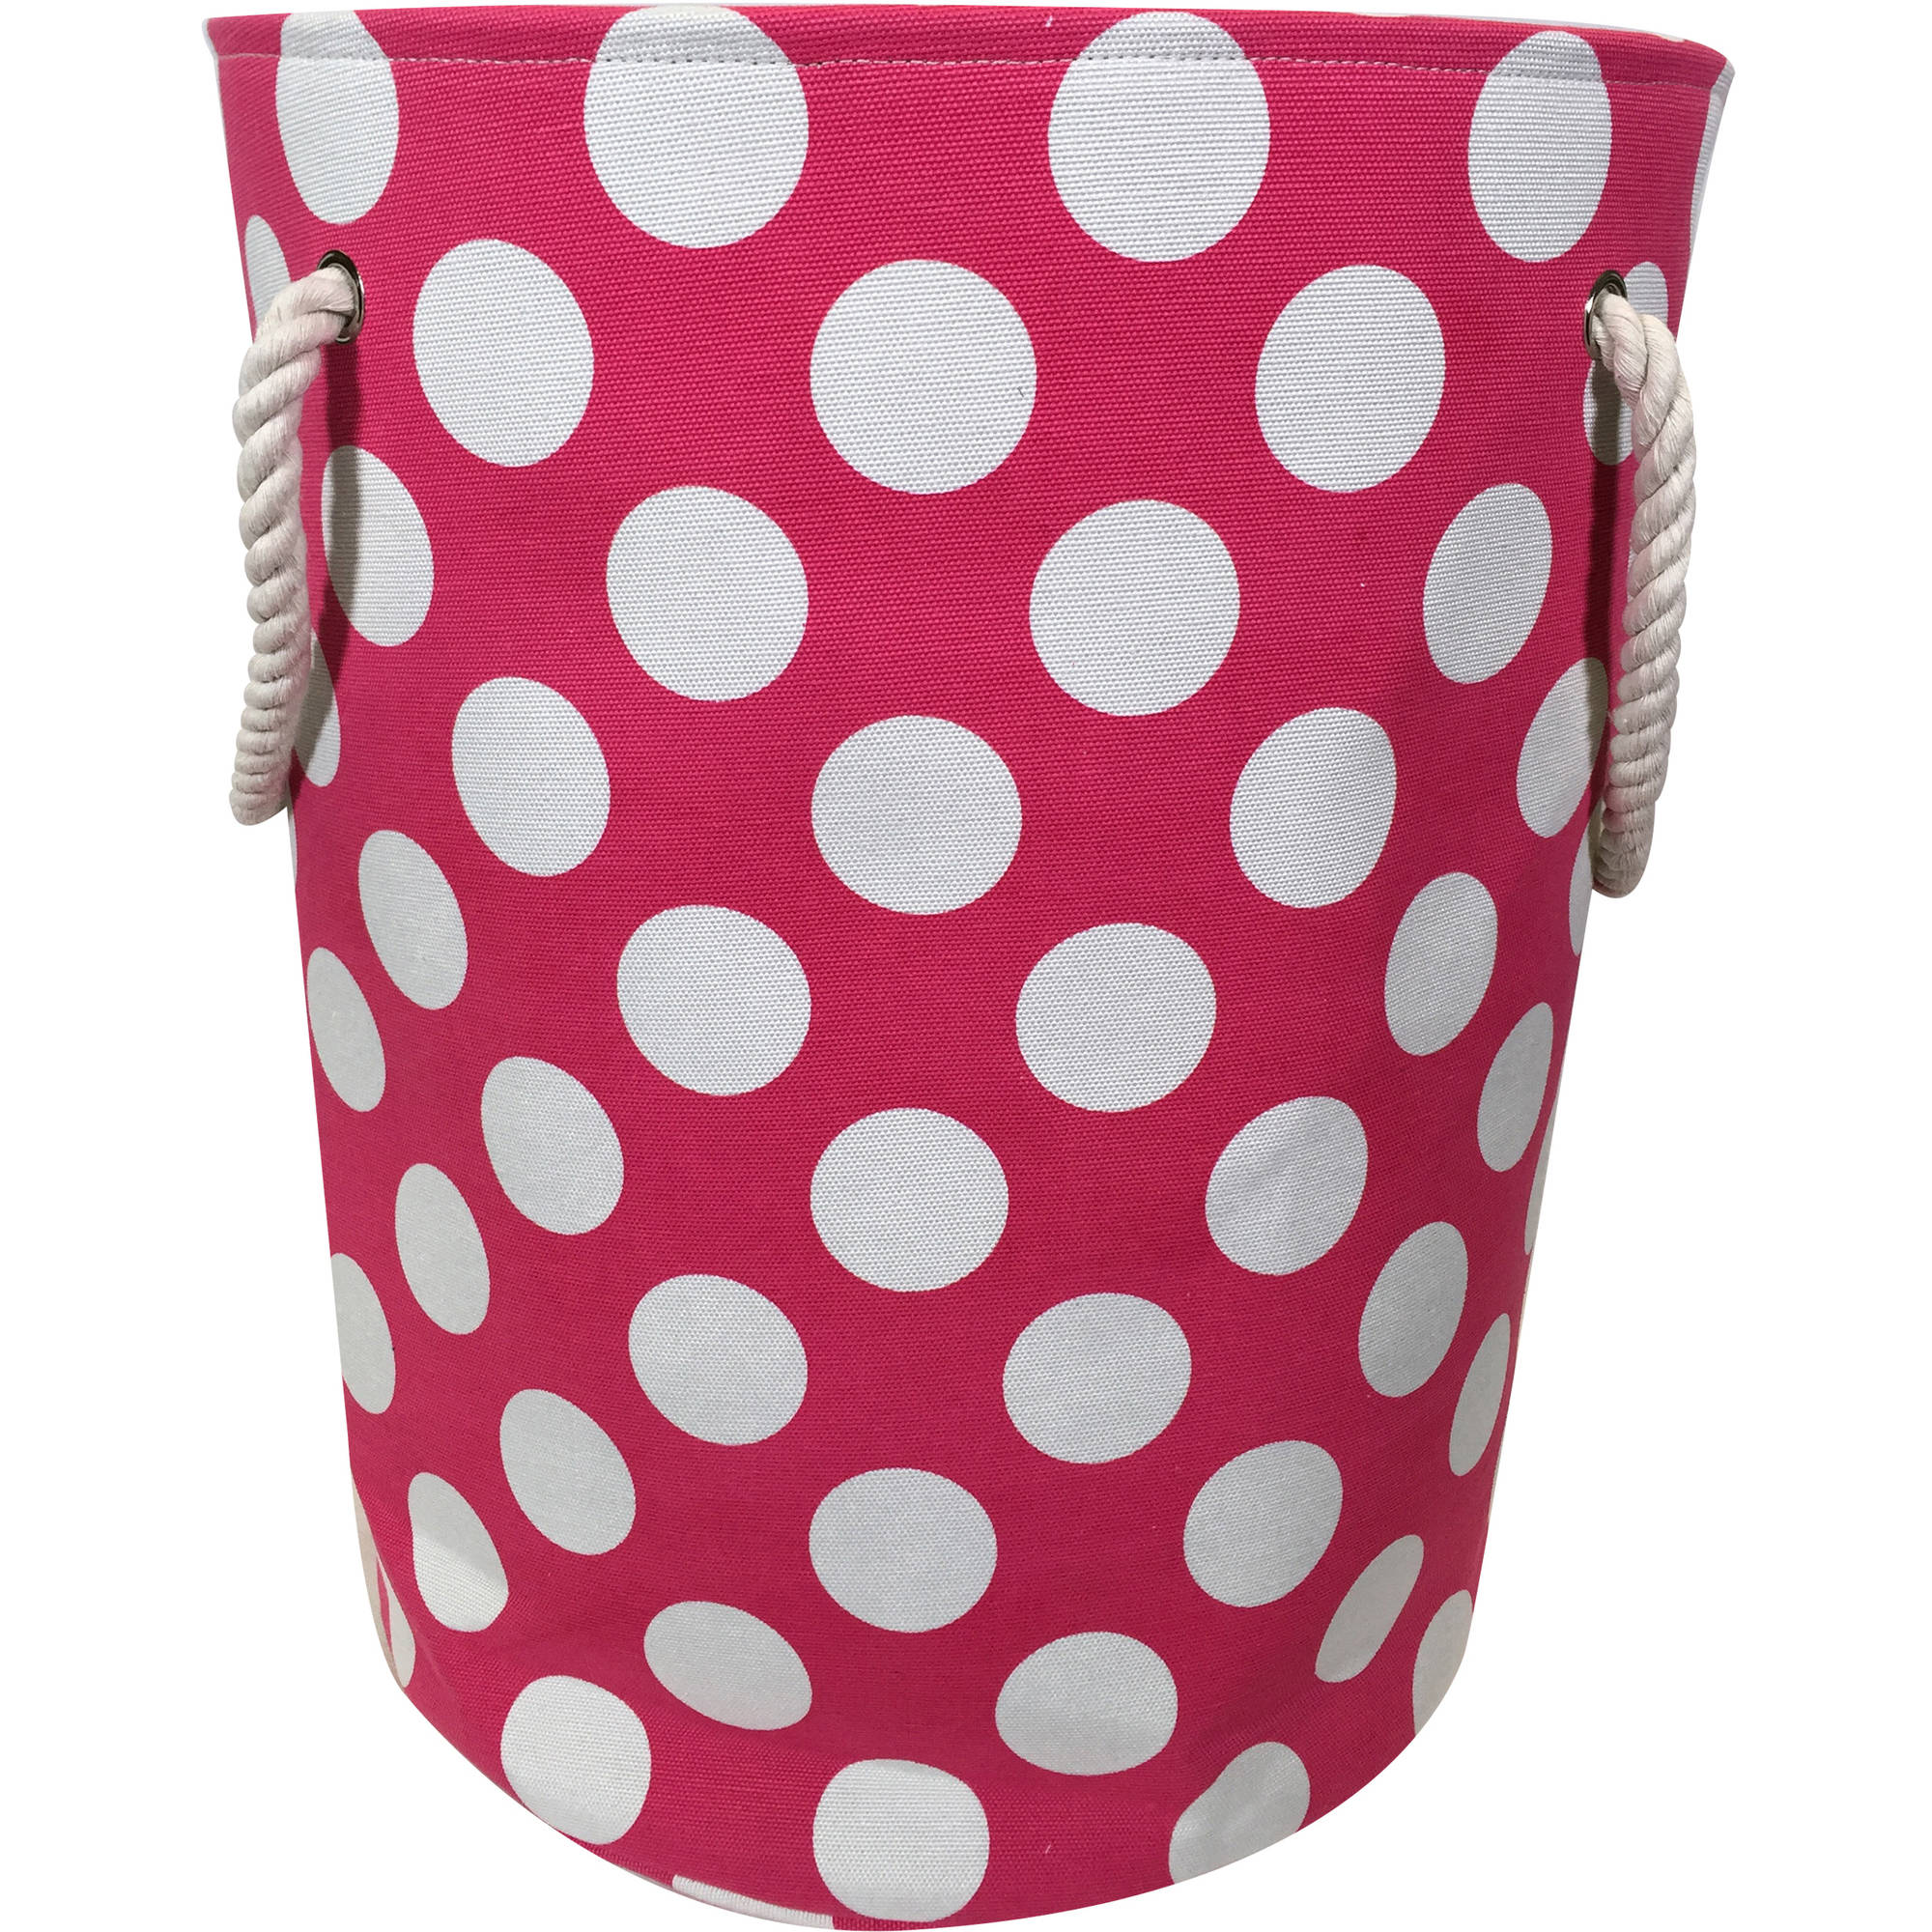 Mainstays Kids Canvas Laundry Hamper with Rope Handles, Pink Dot